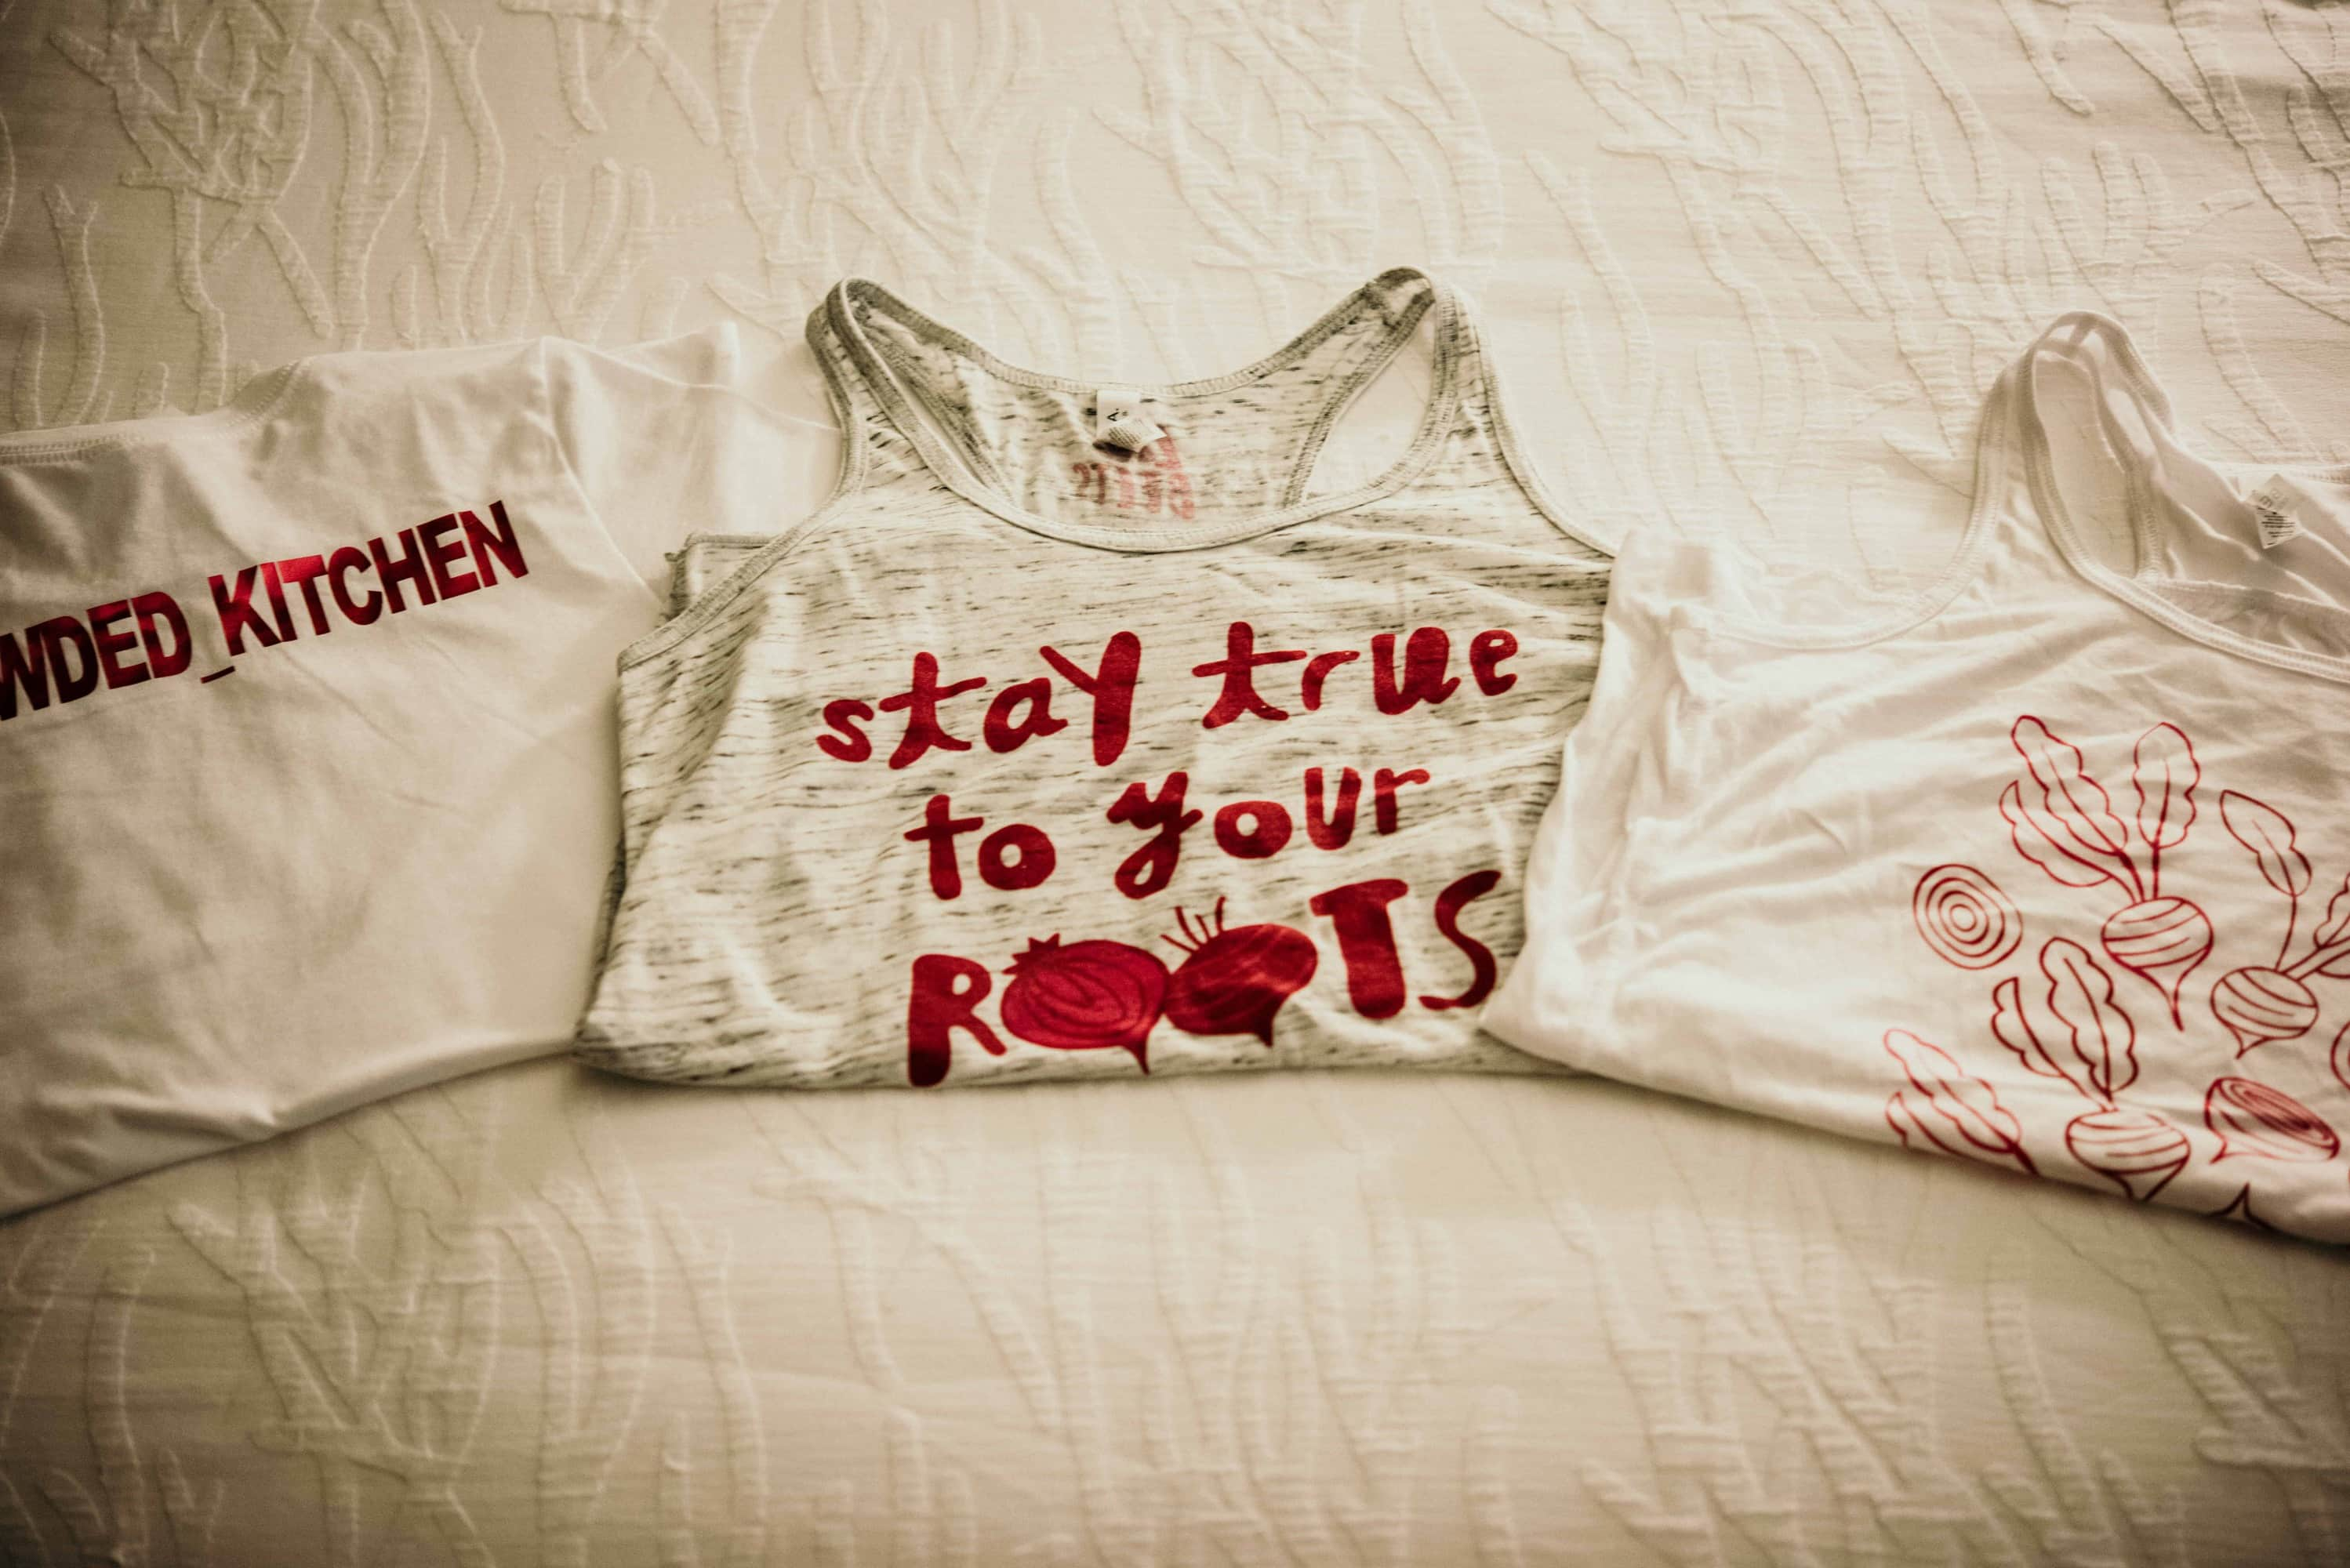 Love beets tank tops folded on a bed with a whit bedspread.